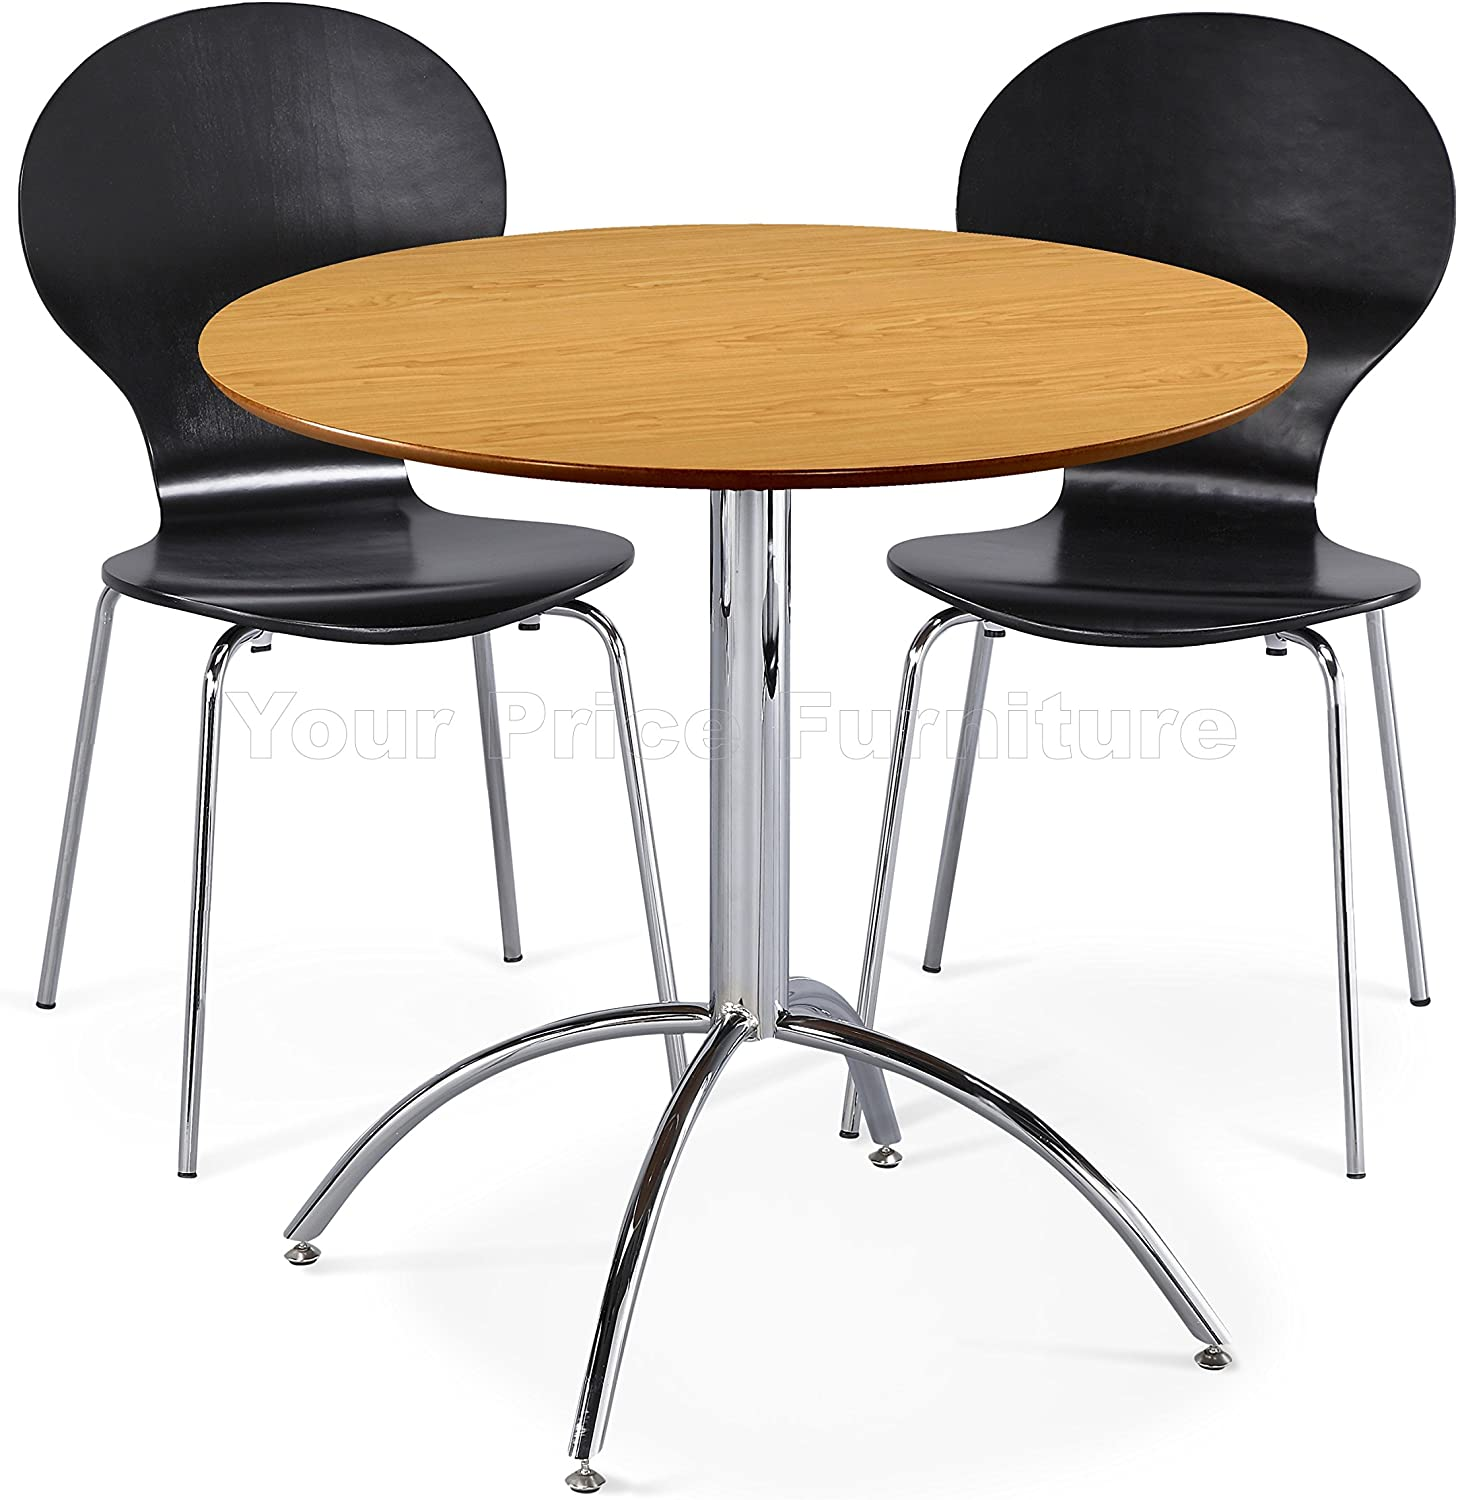 Black or Natural White Table /& 4 Black Chairs Red Kimberley Dining Set Table and 4 Chrome Metal Keeler Style Stackable Dining Chairs White Green Kitchen Cafe Bistro Chairs /& Small Round Table